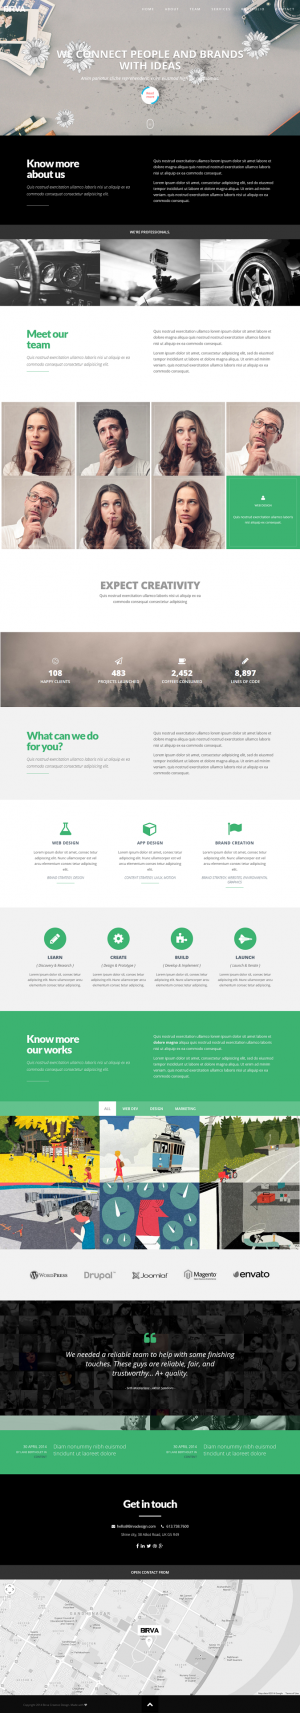 BIRVA One Page Theme is a vibrant, responsive one page parallax theme built on the Bootstrap 3 f ...